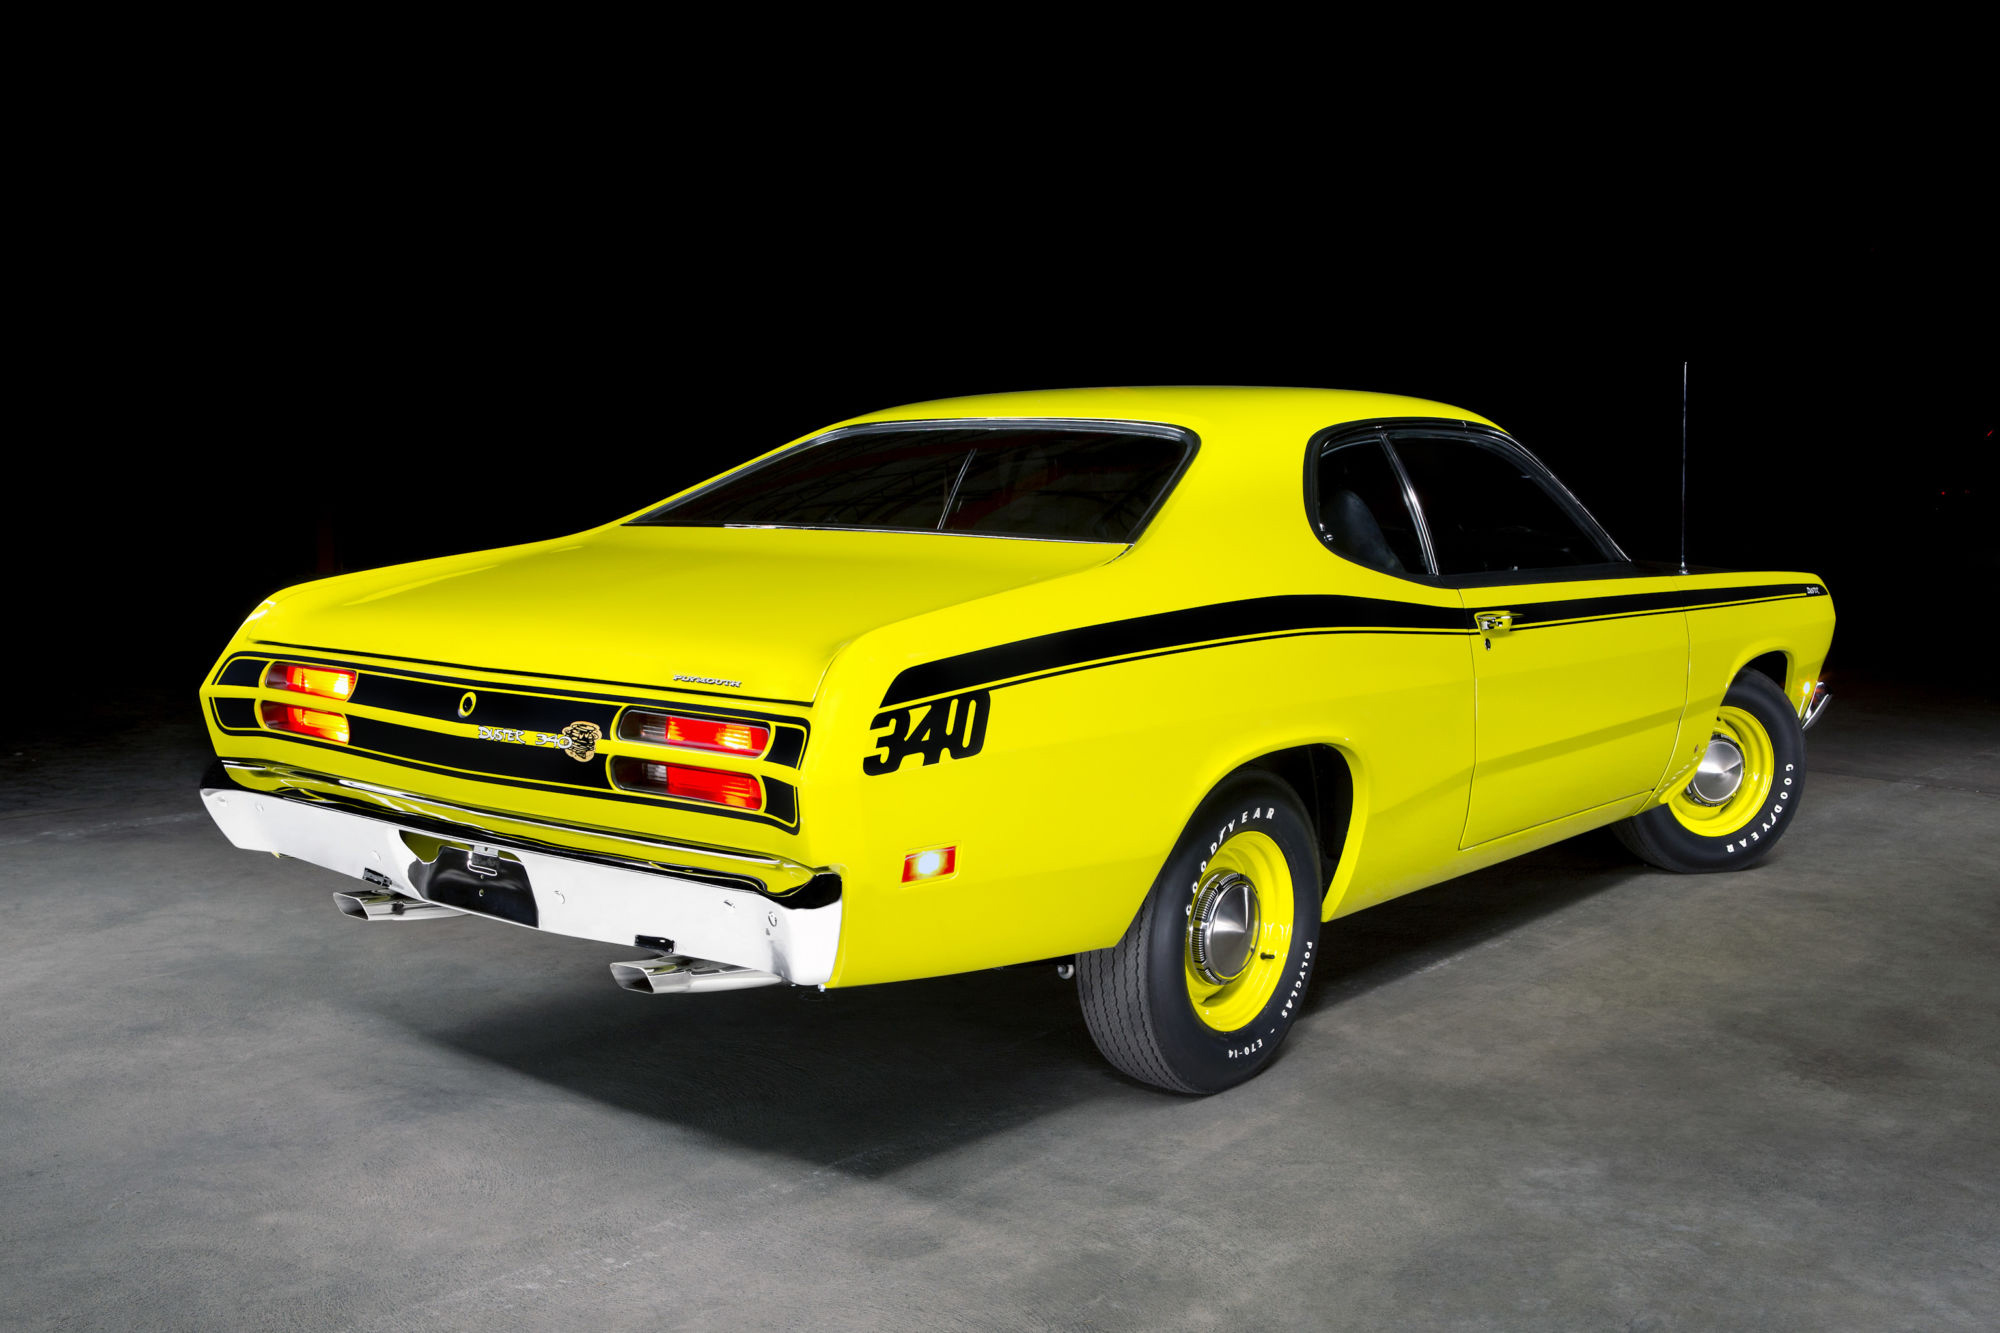 13. 1971 Plymouth Duster